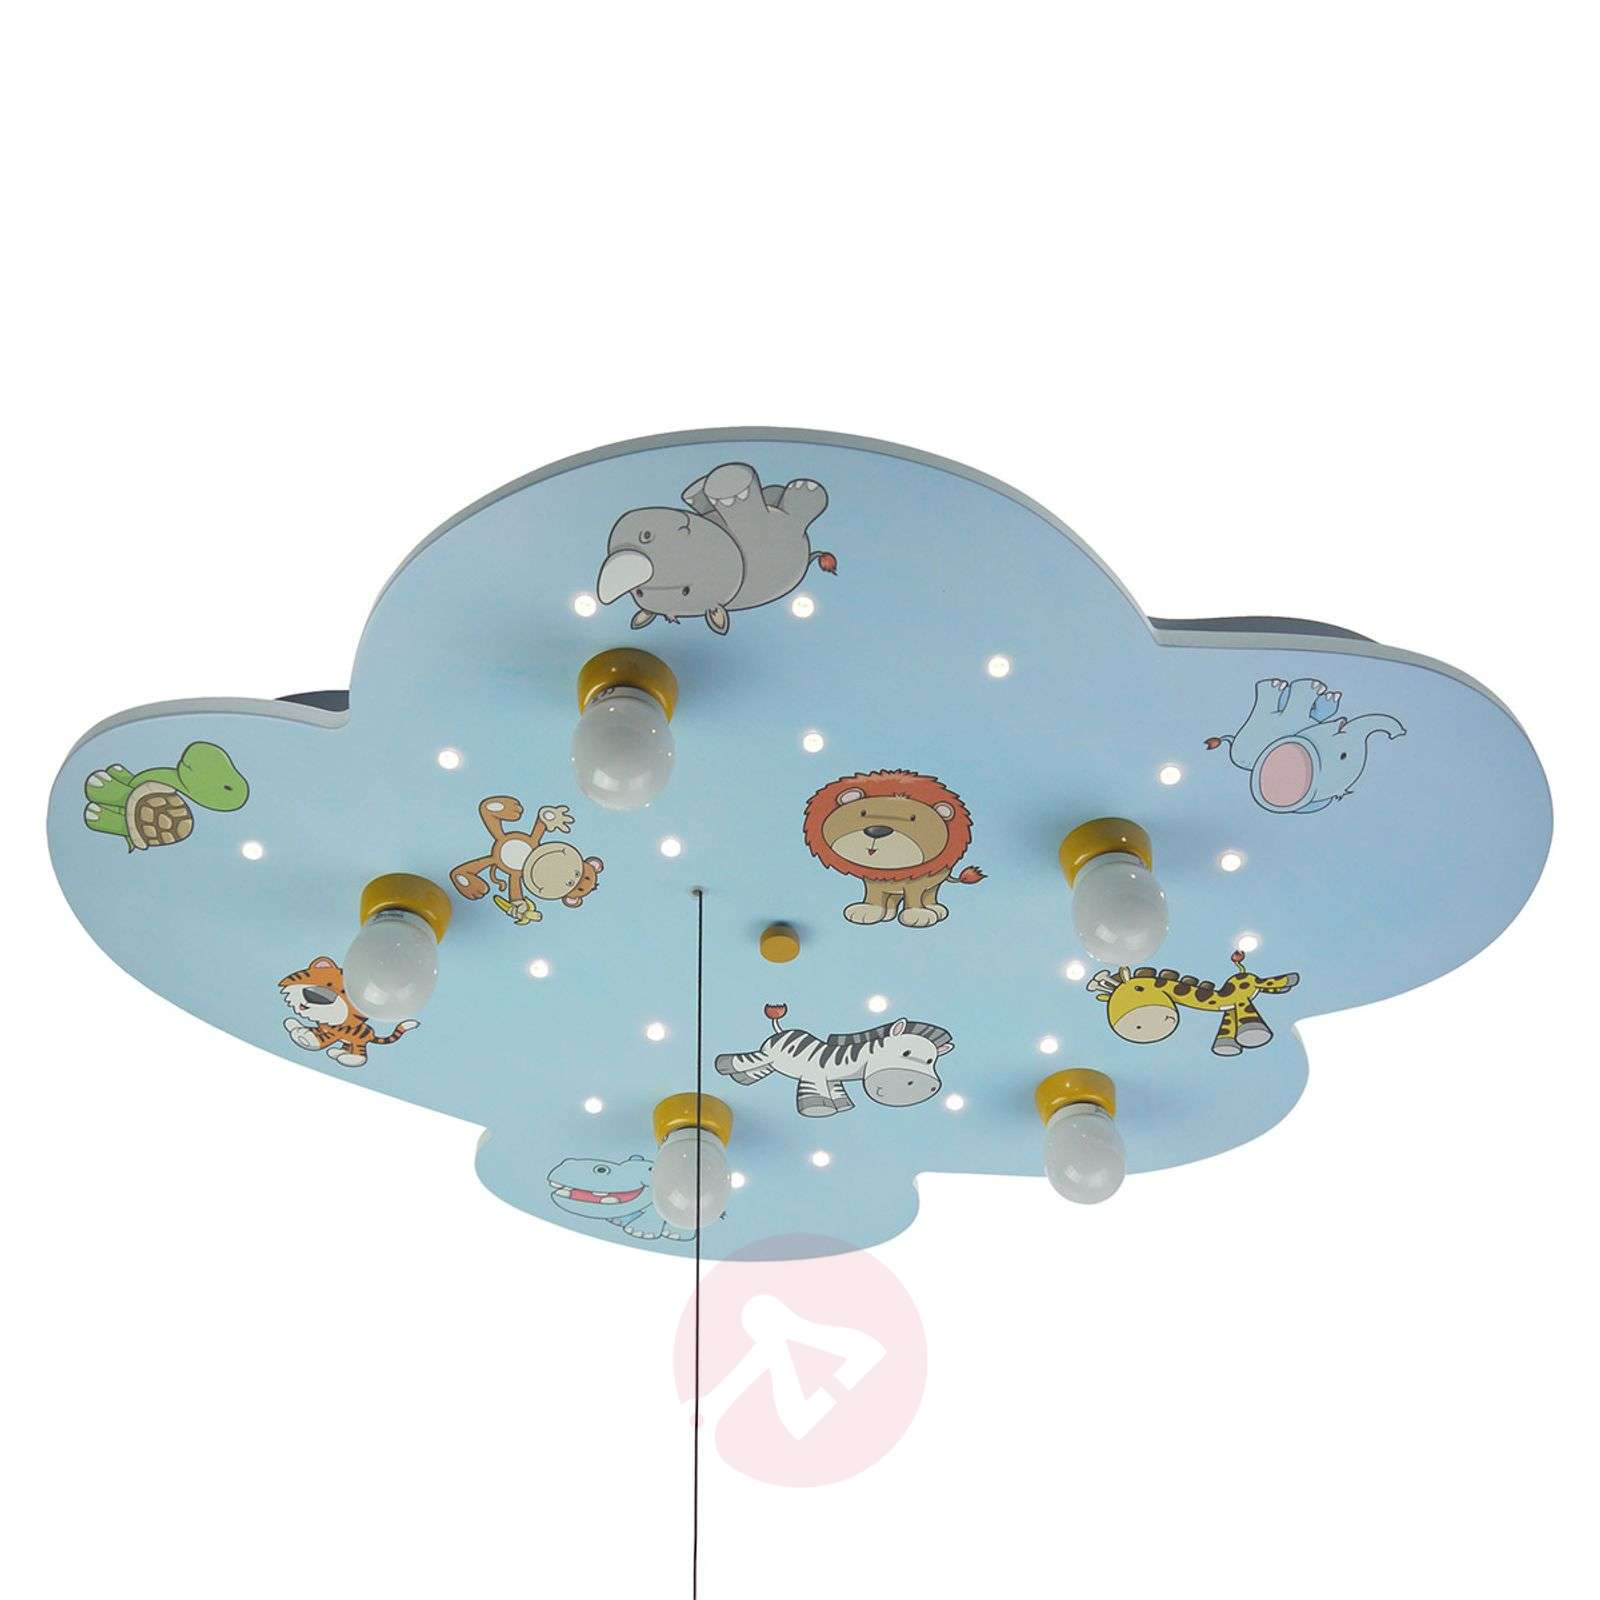 full dunelm oright room lamp shade design childrens rooms shadesiving walls light grey setseather dark ideas girls with ceiling size fabricamp of archived polka stunning childrensamp cloud dot pink